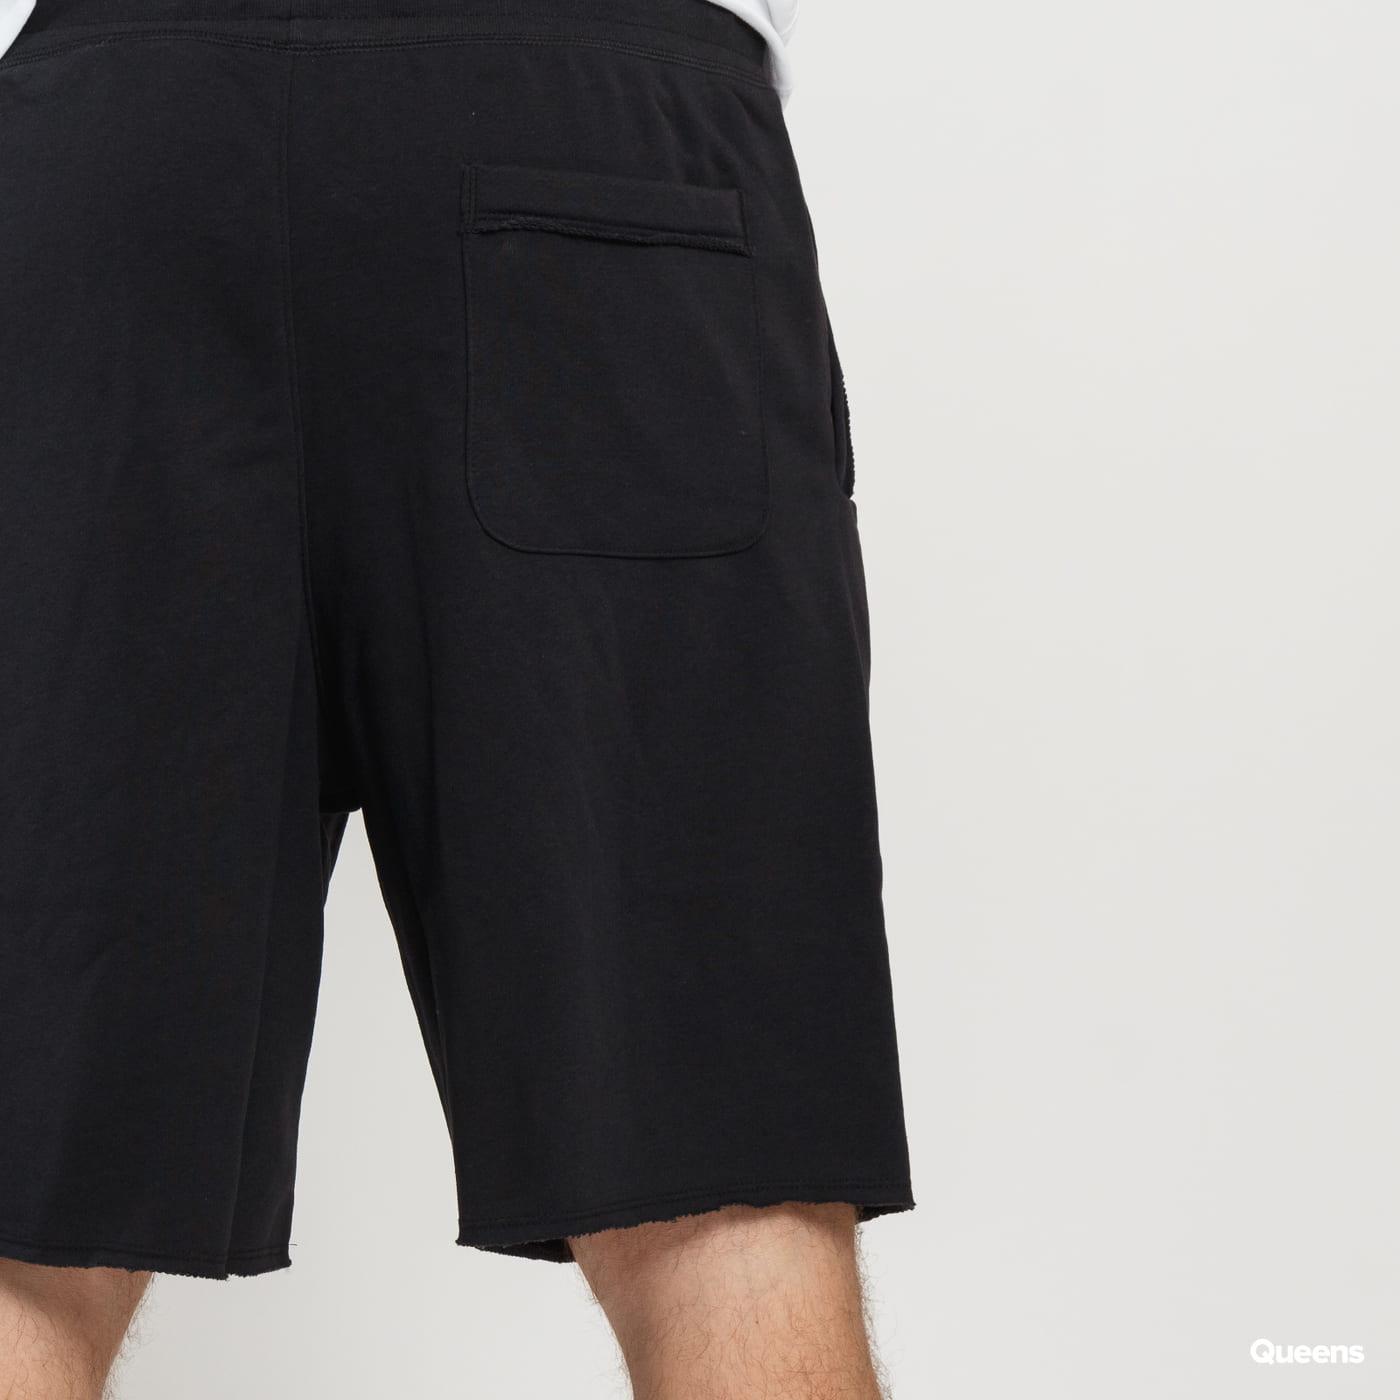 Nike M NSW HE Short FT Alumni black satin